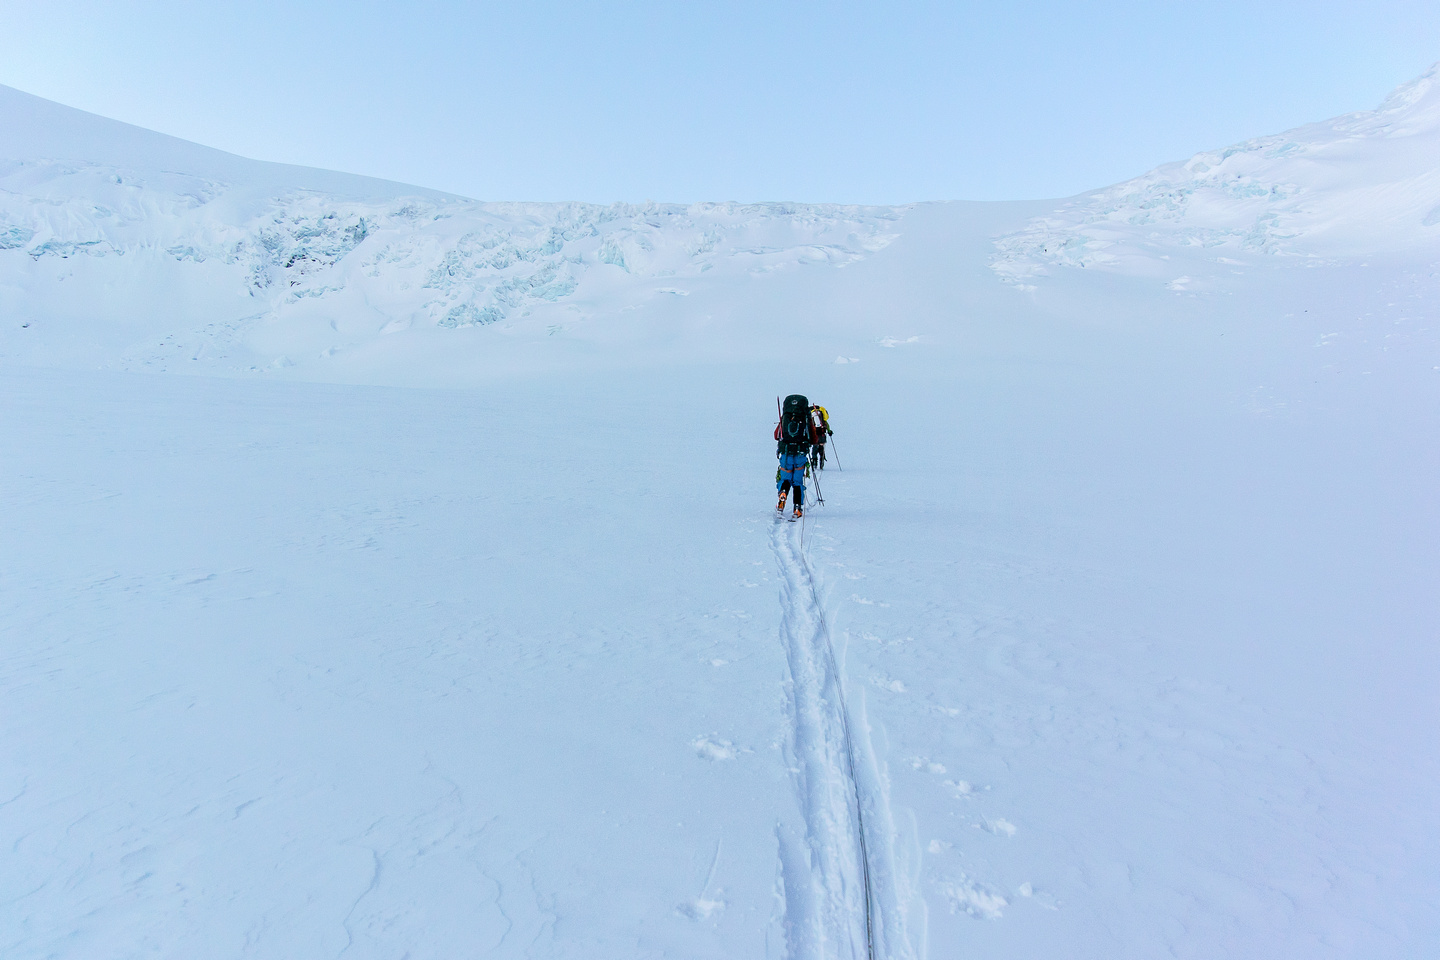 Heading for the almost indistinct ramp - just above Ben and Steven in the distance and looking much smaller than it is.